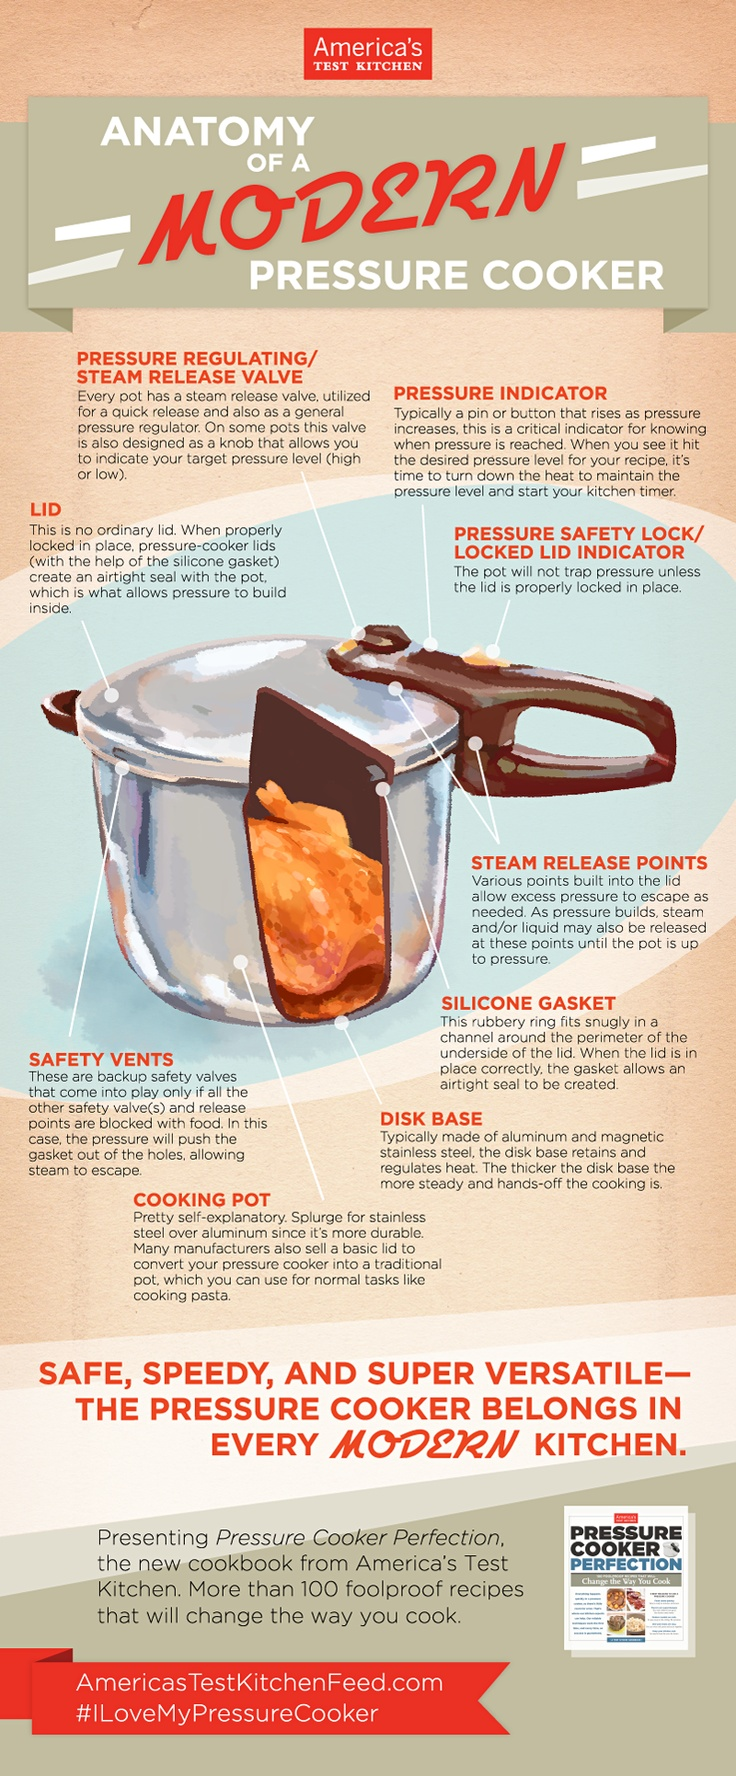 Pressure Cooker  Designed for a Modern Kitchen [INFOGRAPHIC]  Grew up with Mom using one of these...(different handle)...then I used one for years after I got married.  Quit for 20 years...have a new one now and use it all the time...rb